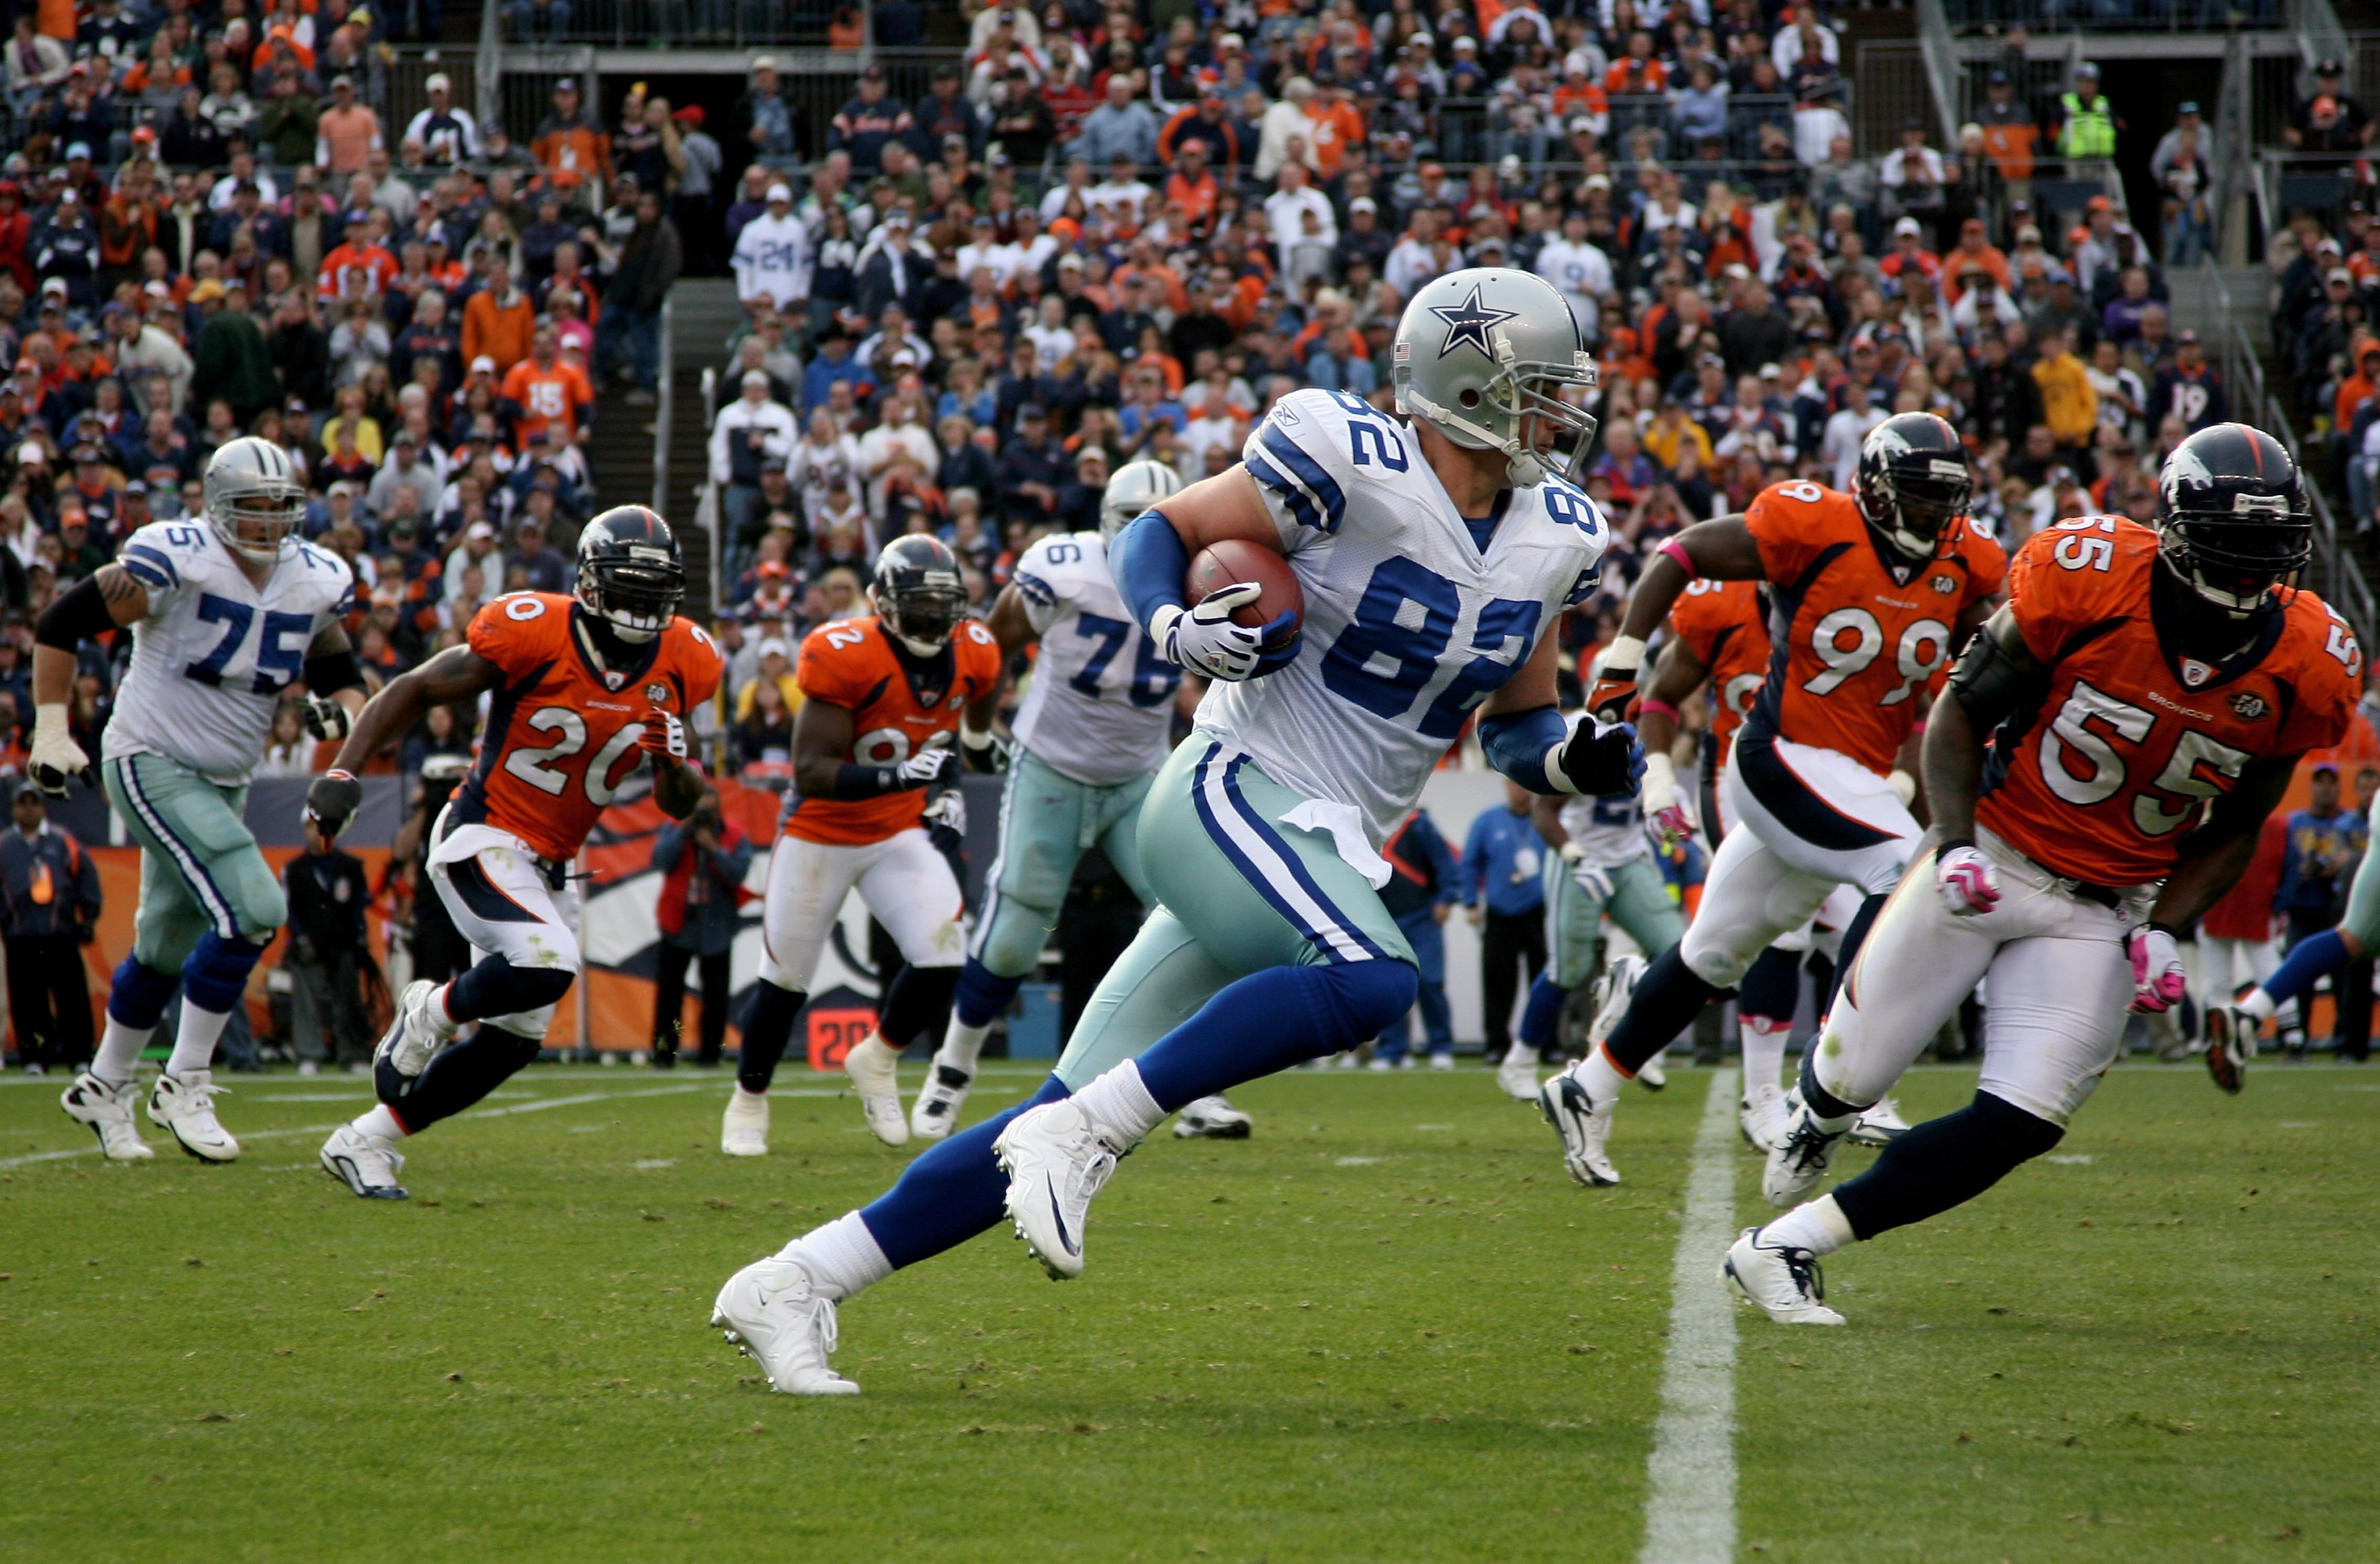 DENVER - OCTOBER 04:  Jason Witten #82 of the Dallas Cowboys makes a reception against the Denver Broncos during NFL action at Invesco Field at Mile High on October 4, 2009 in Denver, Colorado. The Broncos defeated the Cowboys 17-10.  (Photo by Doug Pensi